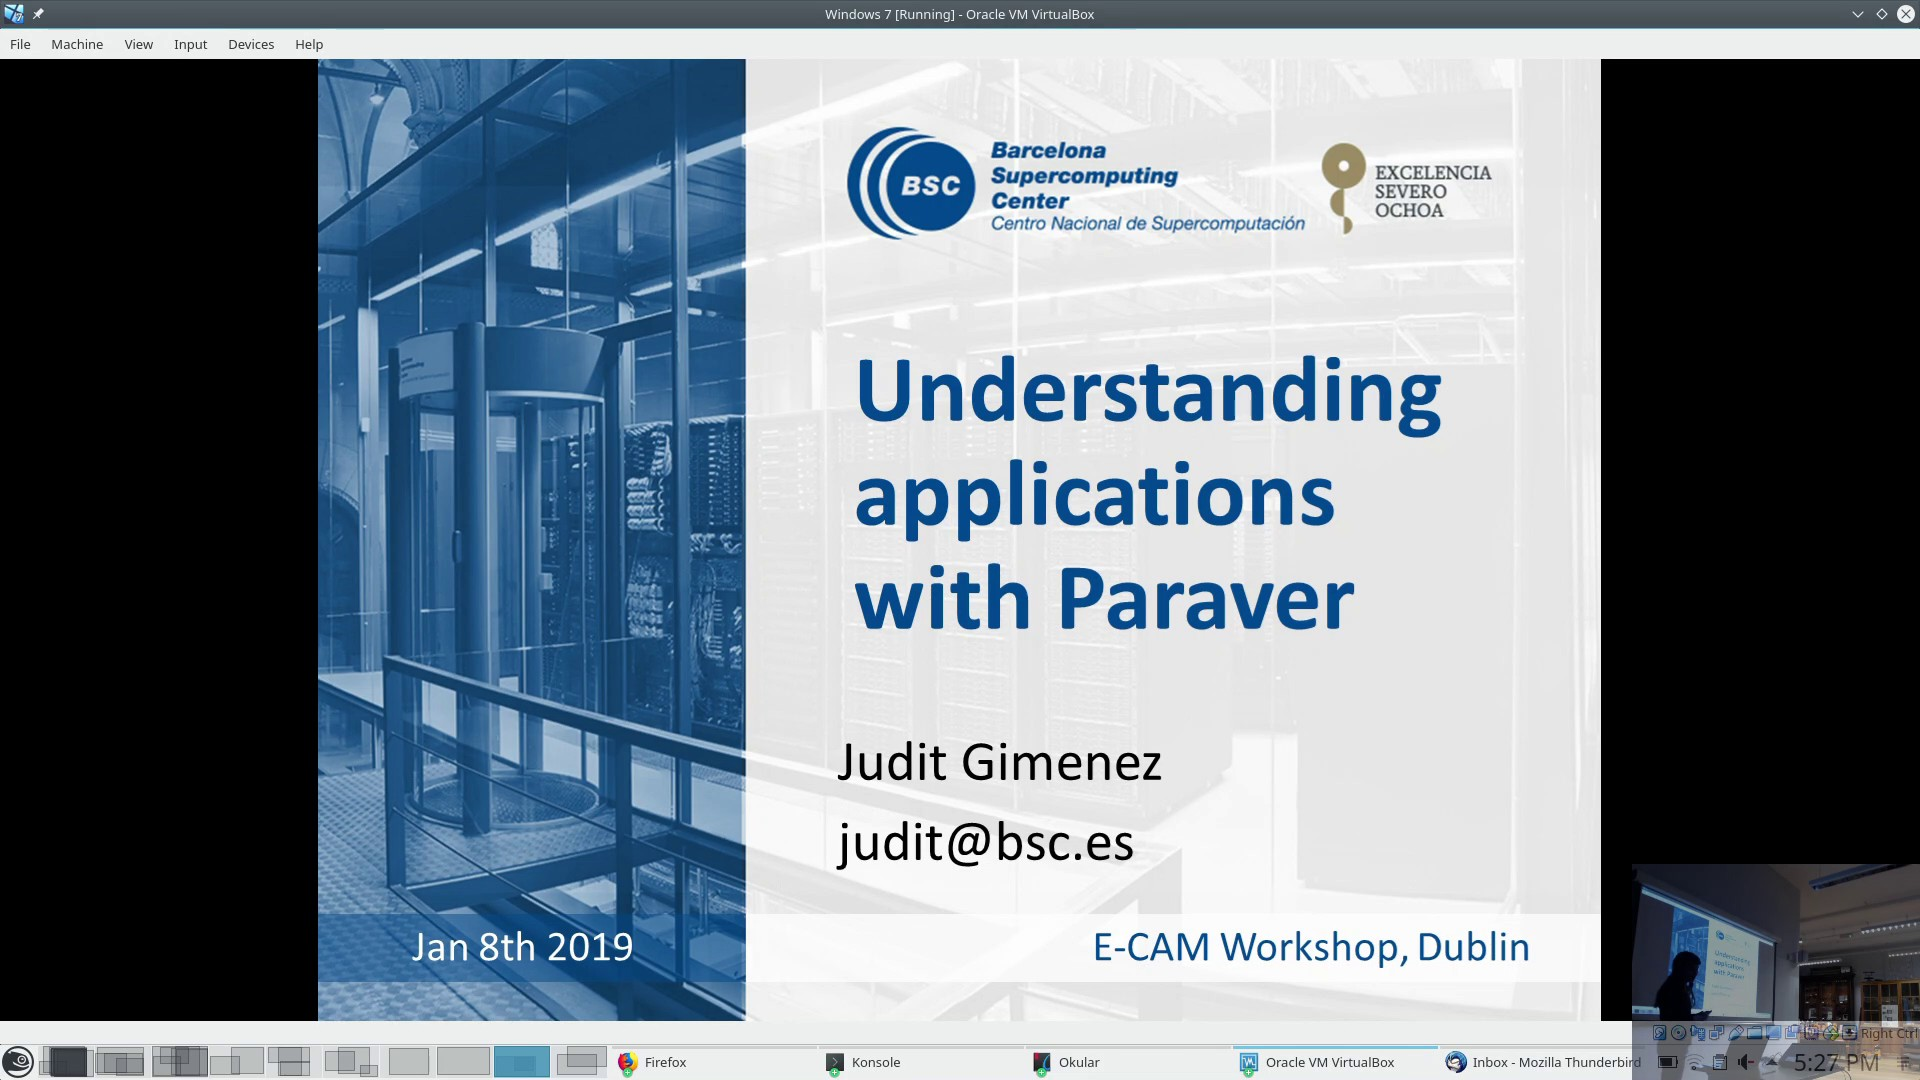 Thumbnail of Understanding applications with Paraver